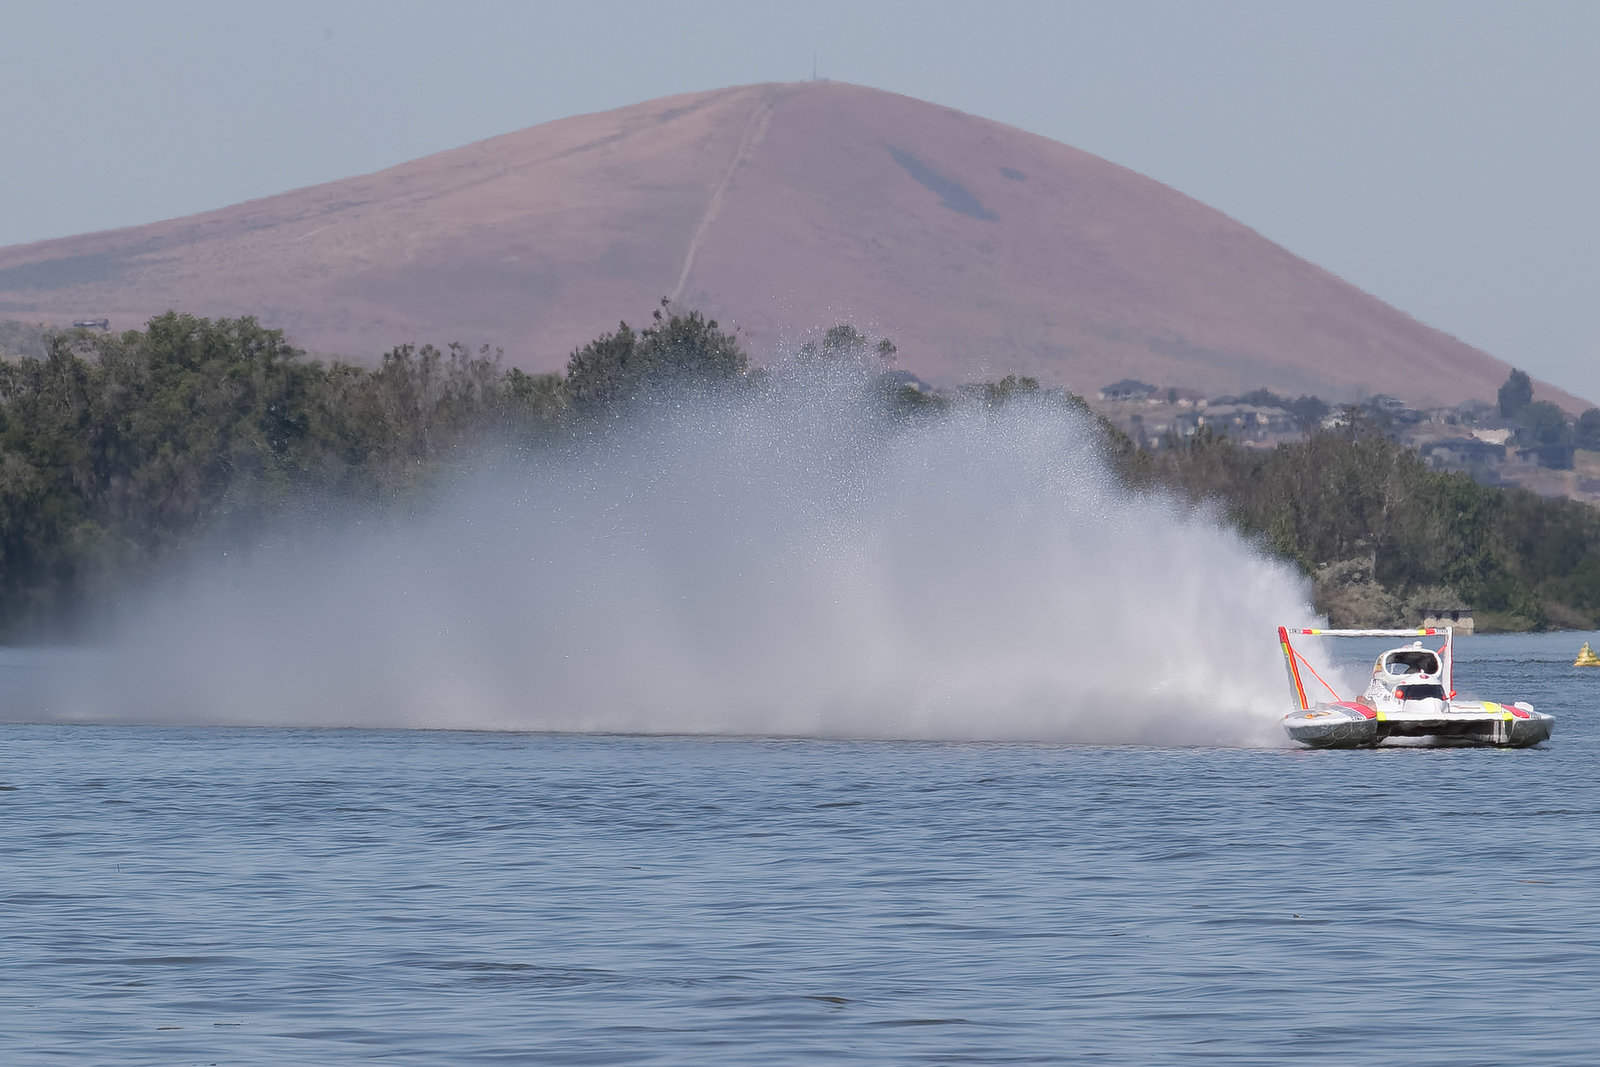 SUMMER IS HERE AND THE HYDROS ARE COMING! – H1 Unlimited